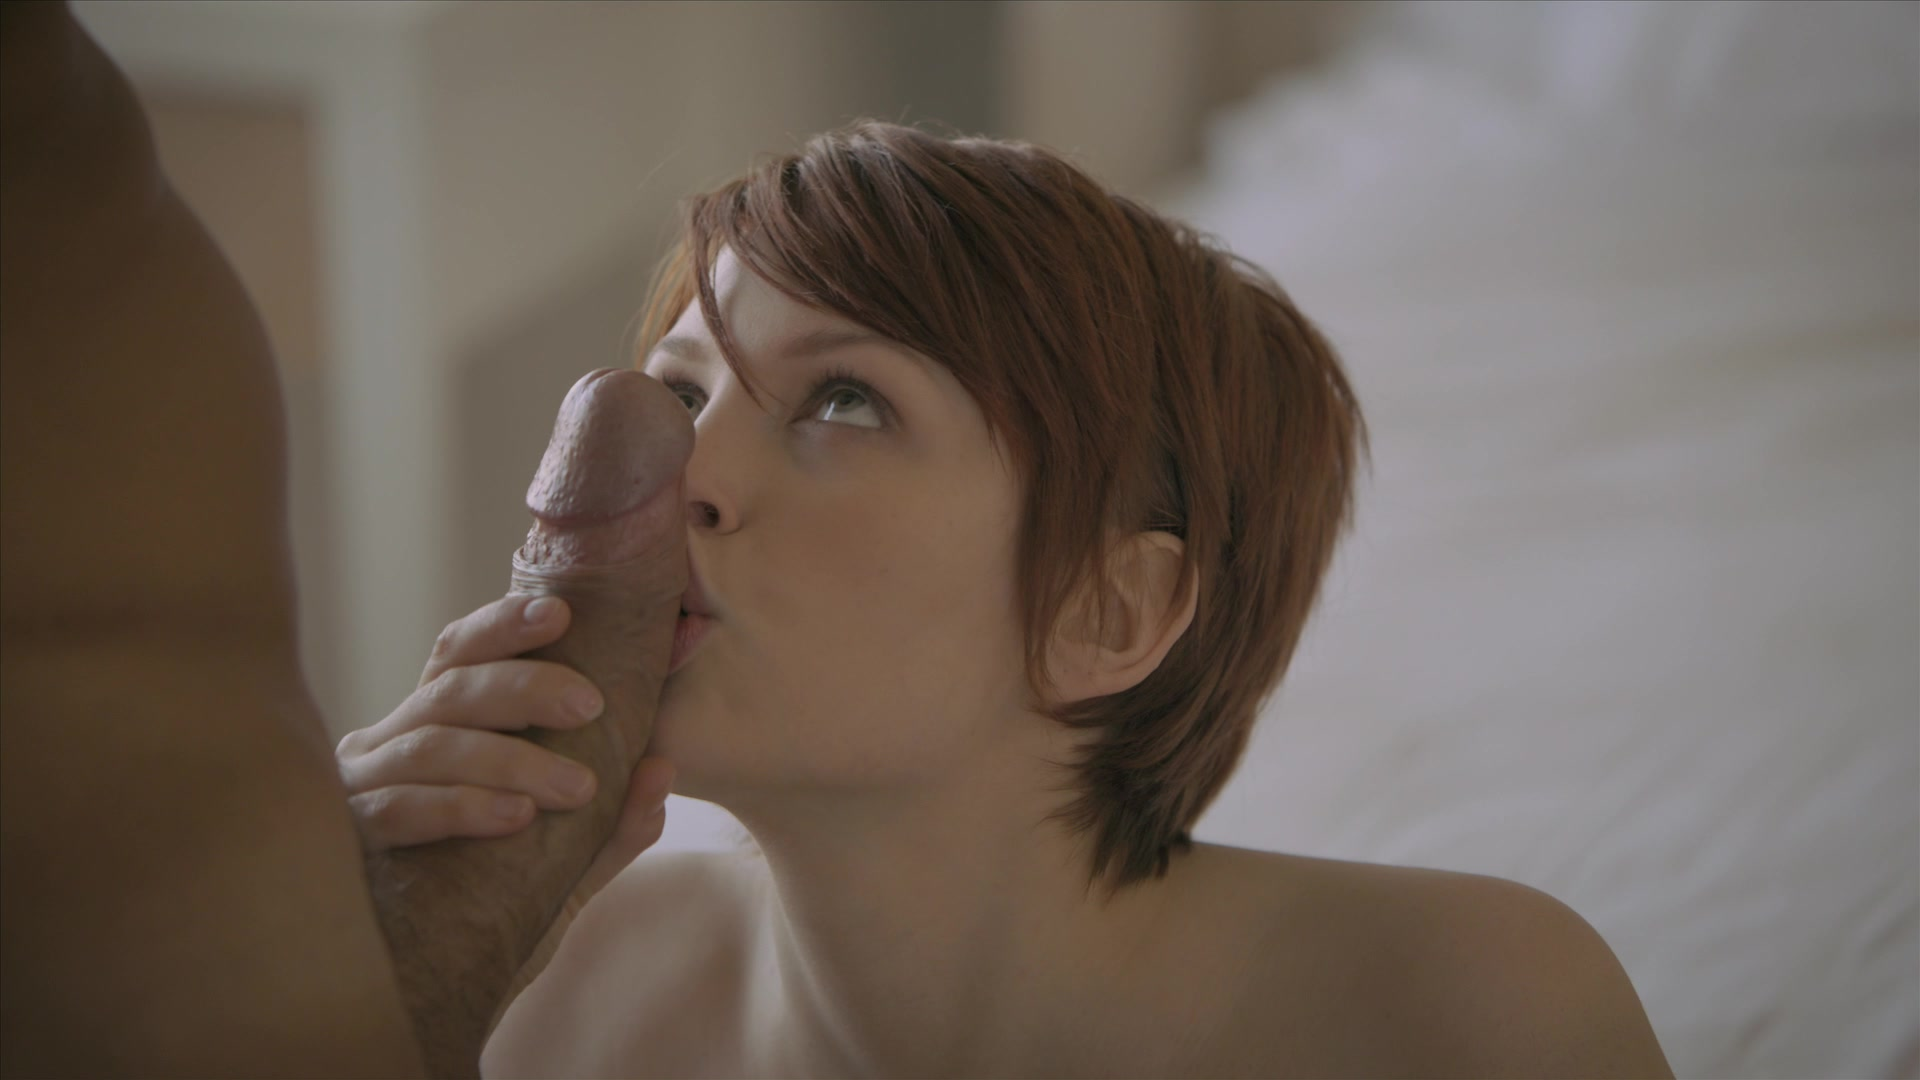 Scene with Bree Daniels - image 11 out of 20